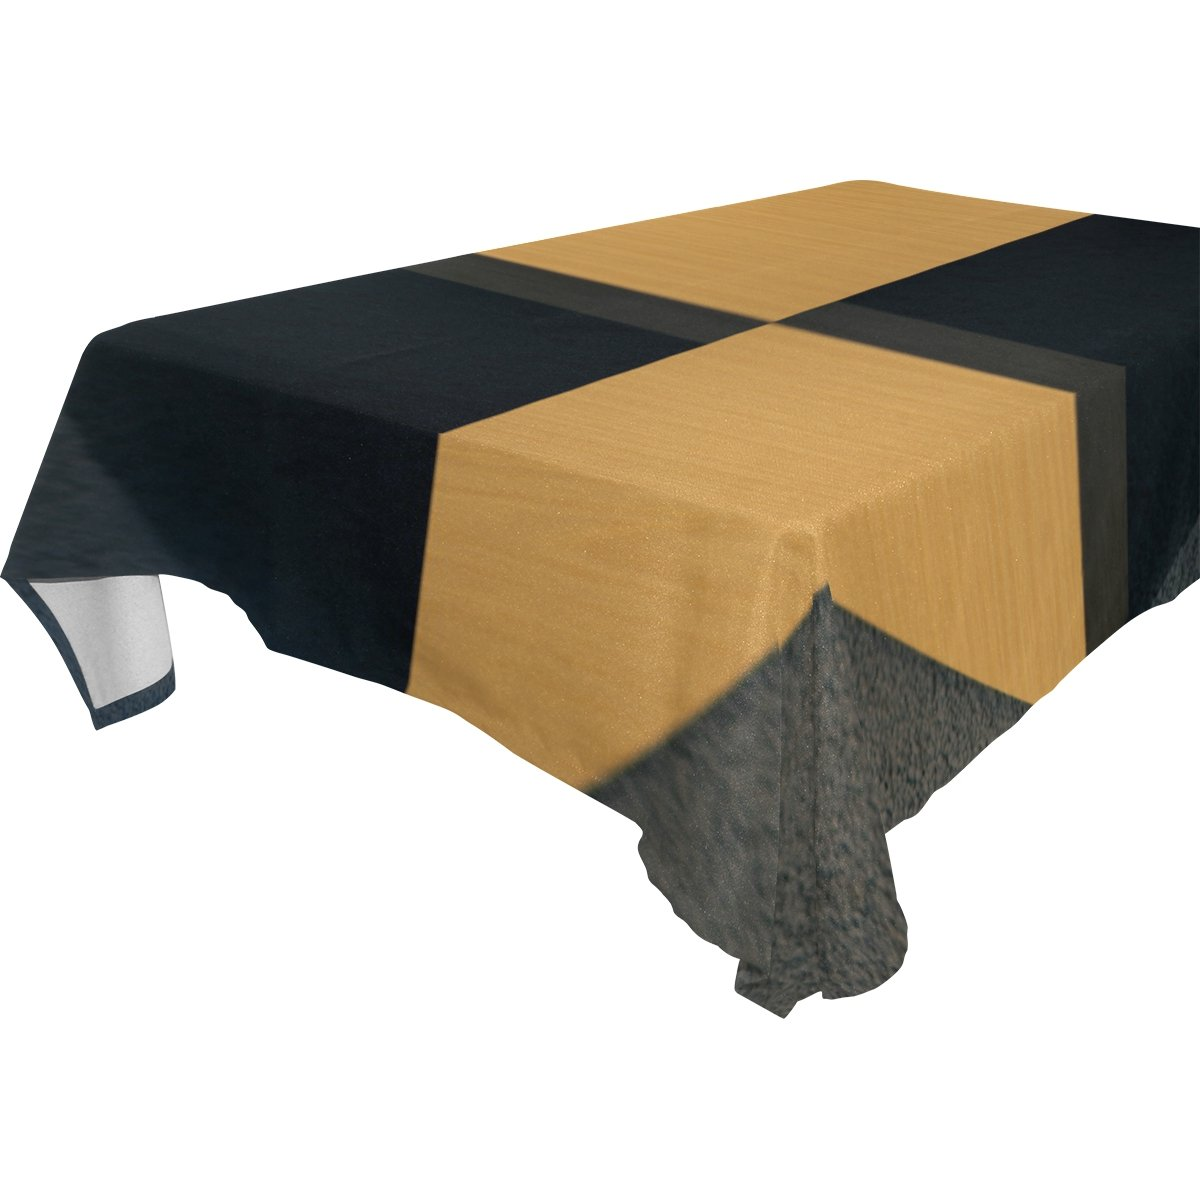 Double Joy Modern Rectangle Square Tablecloth 60x60 Inches Wing Wood Floor Cover for Dinners Parties Banquet or Picnic